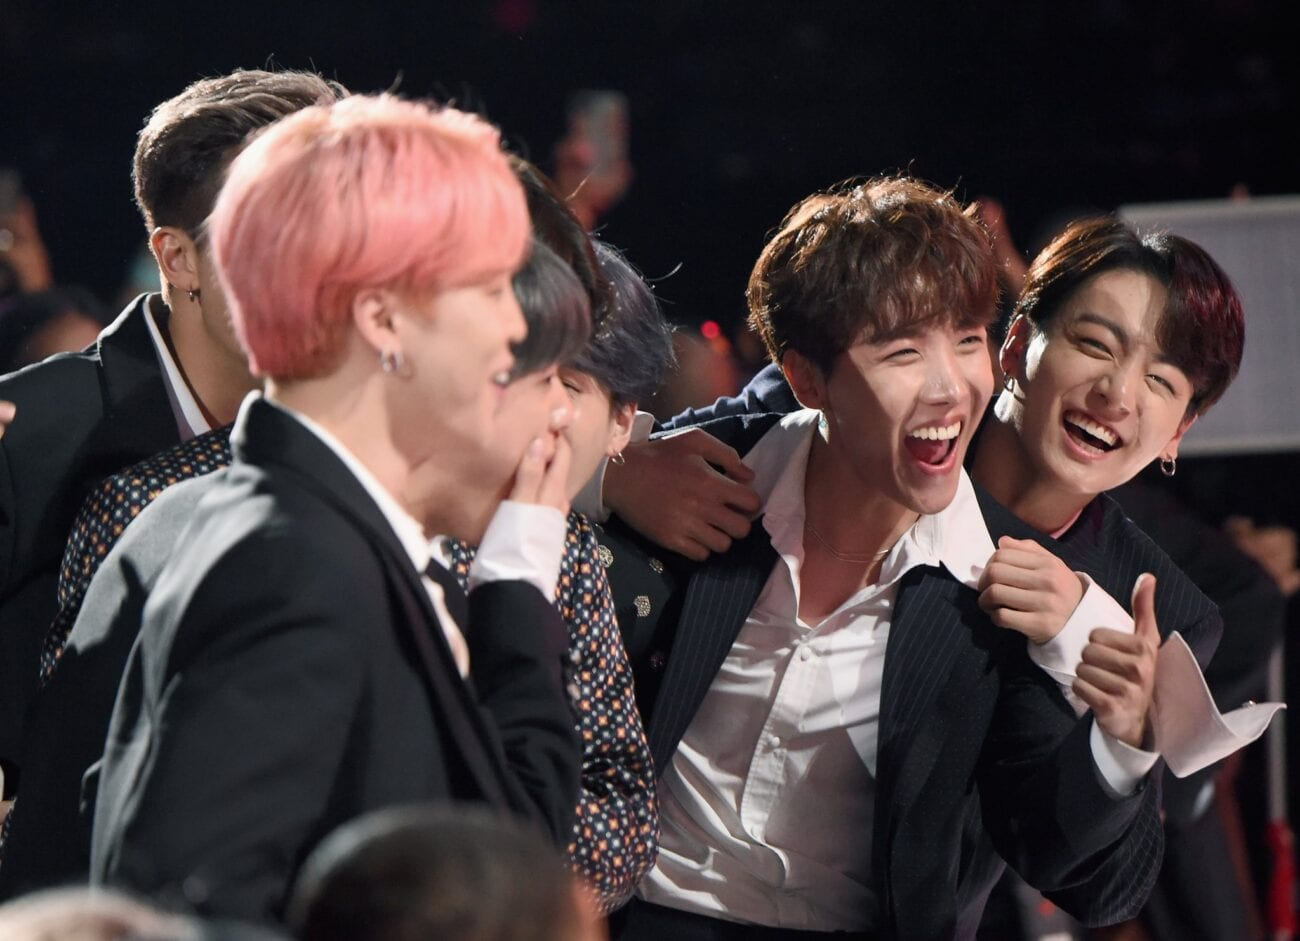 BTS ARMY, do you know how your biases are holding up? Discover how Jin and Suga handle the spotlight and pressures of being a K-pop sensation.